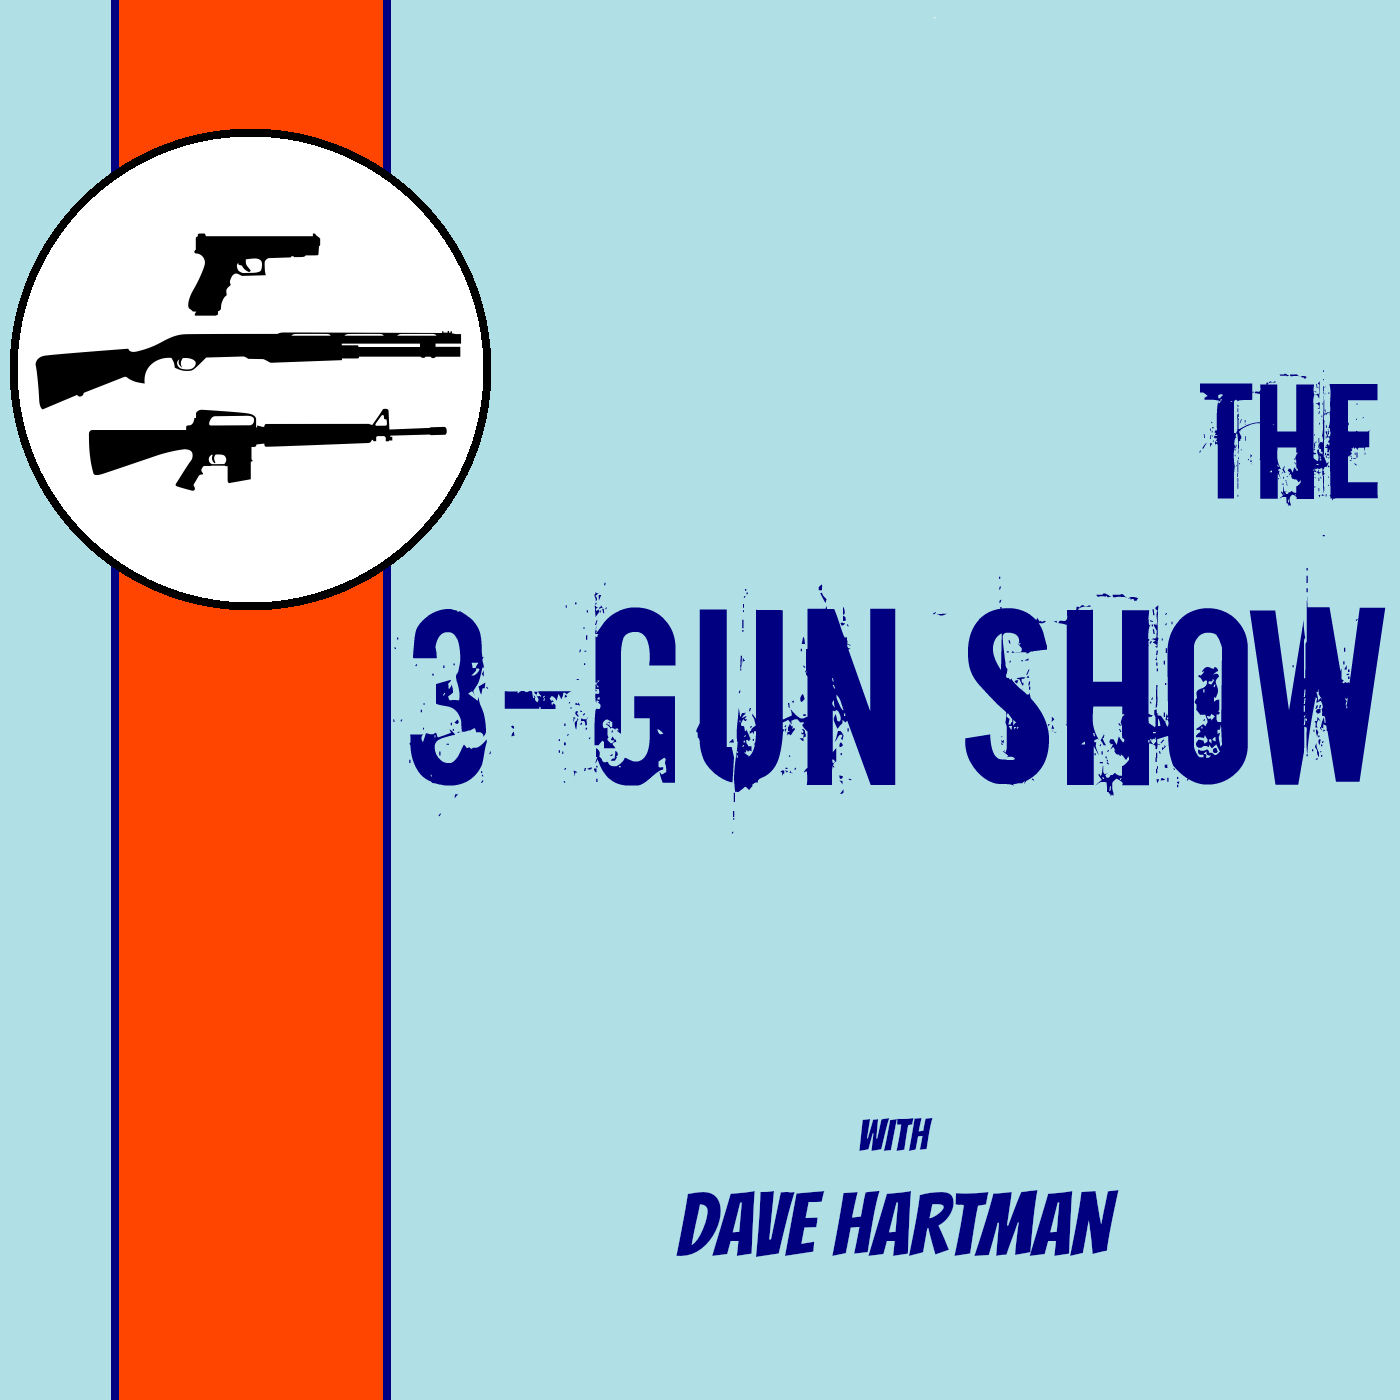 The 3-Gun Show |A weekly podcast featuring the best in Multigun such as Jerry Miculek, Keith Garcia, Taran Butler, Greg Jordan, Tommy Thacker, Janna Reeves, Jesse Tischauser